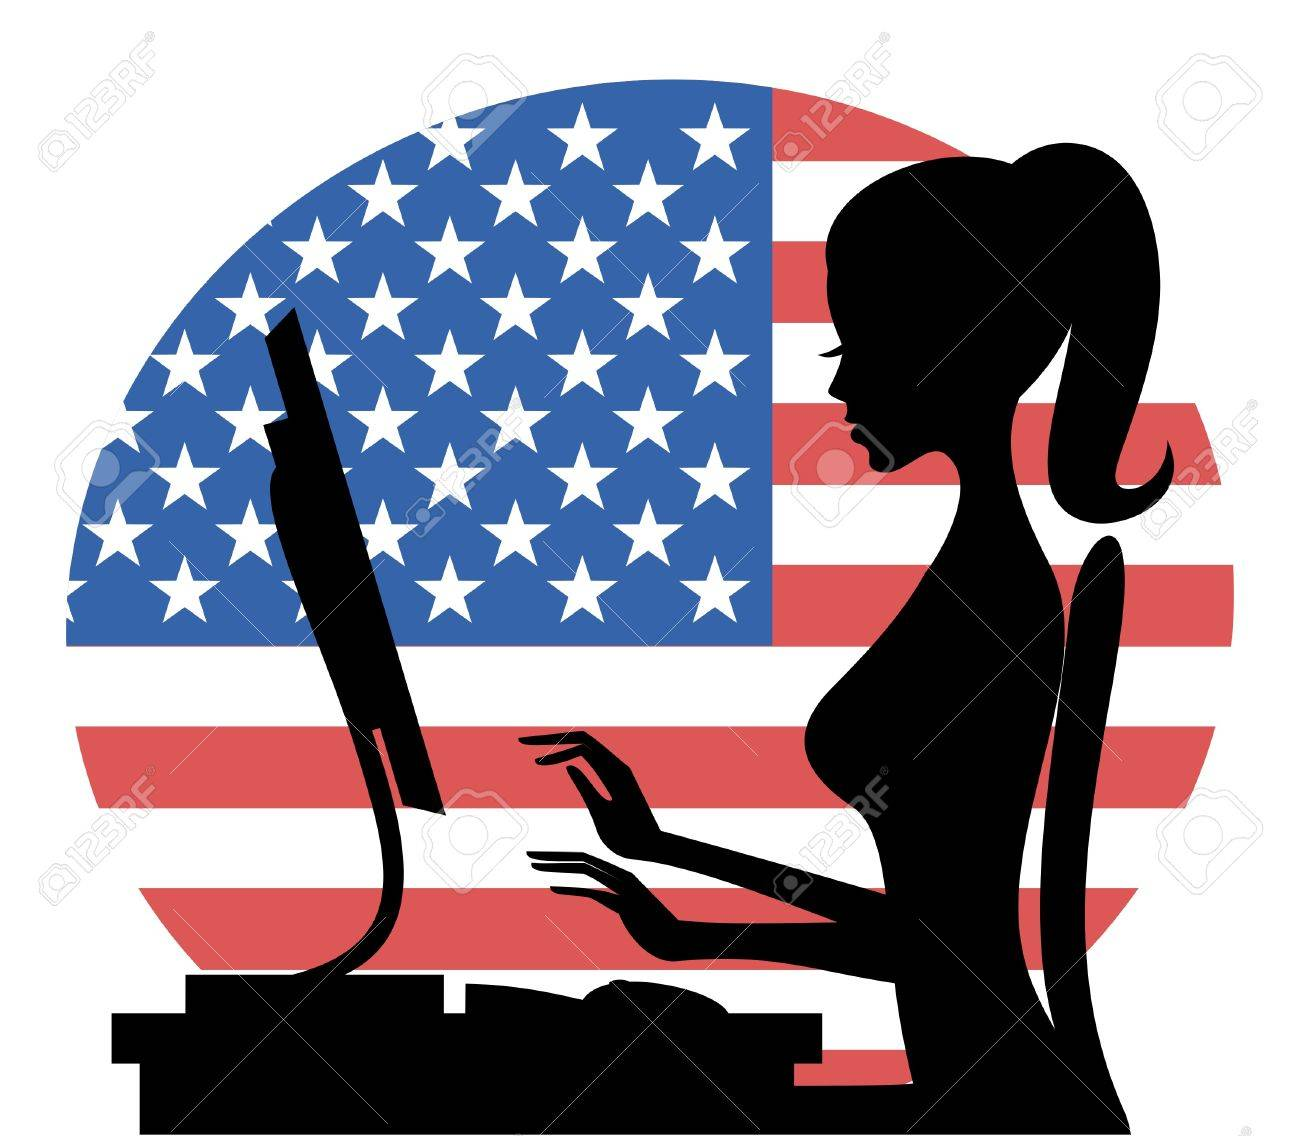 Illustration of a young woman working on computer with the American flag in the background. Stock Vector - 13319207